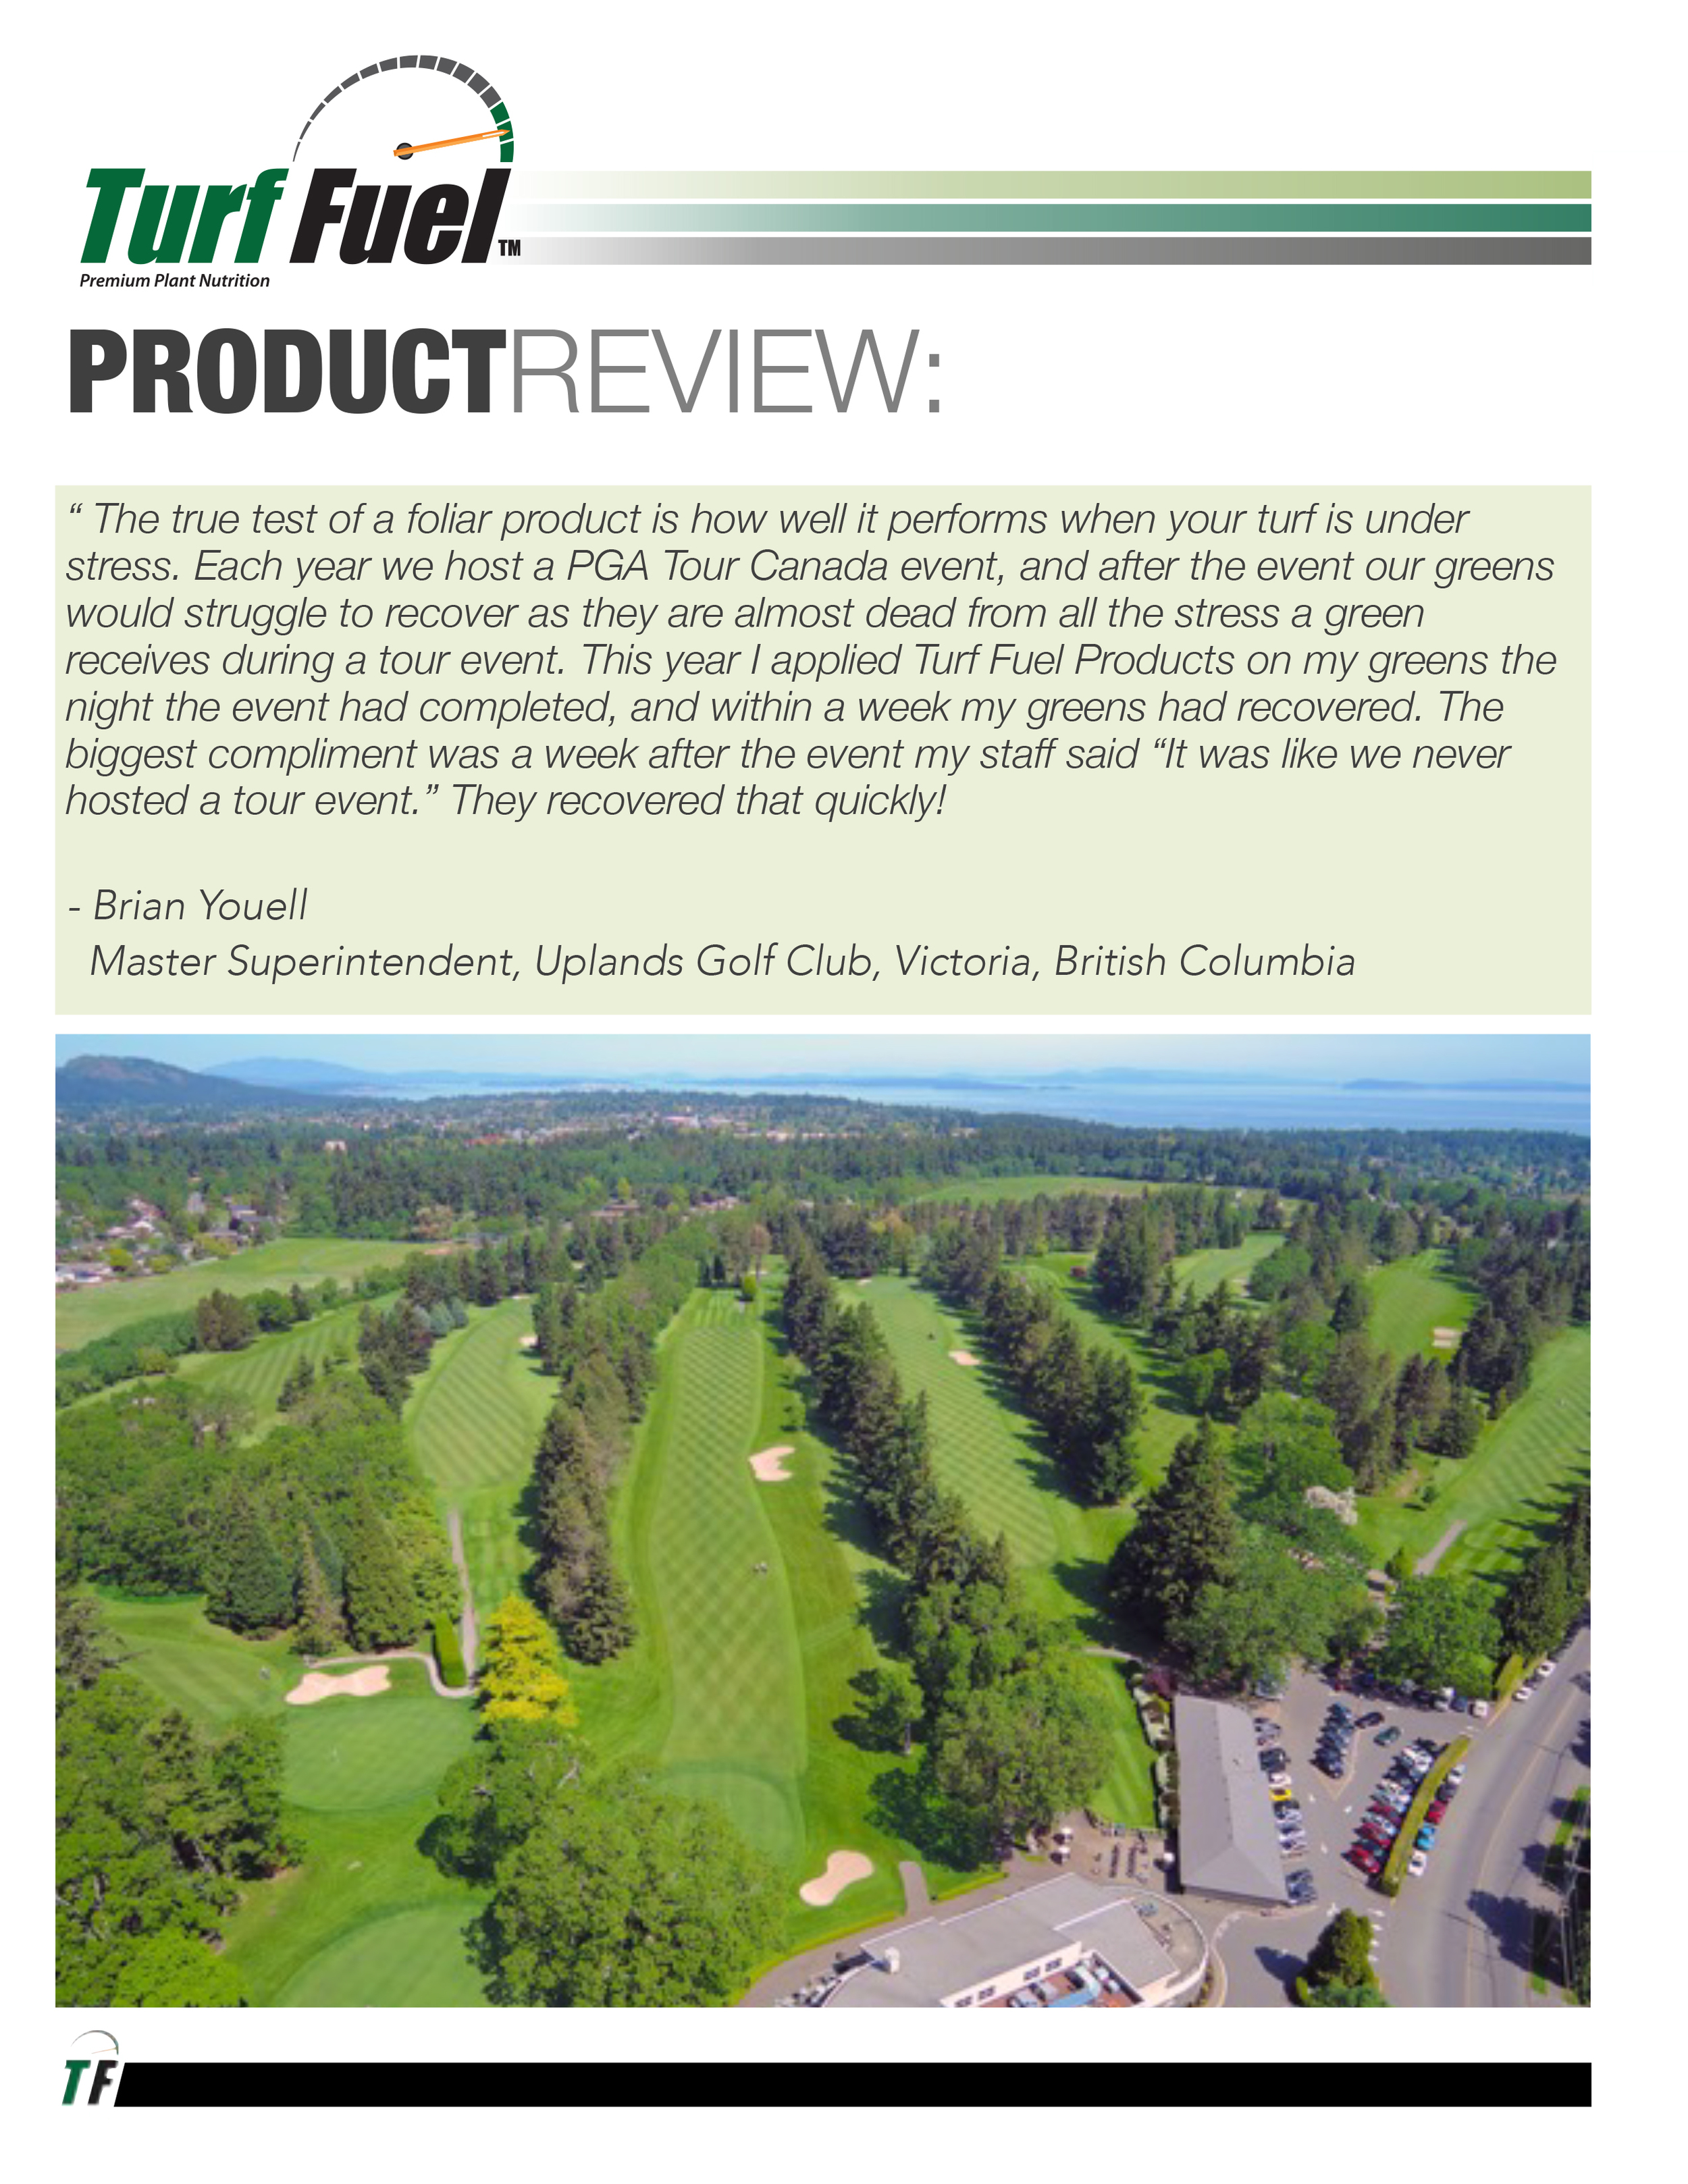 PRODUCT REVIEW Uplands GC